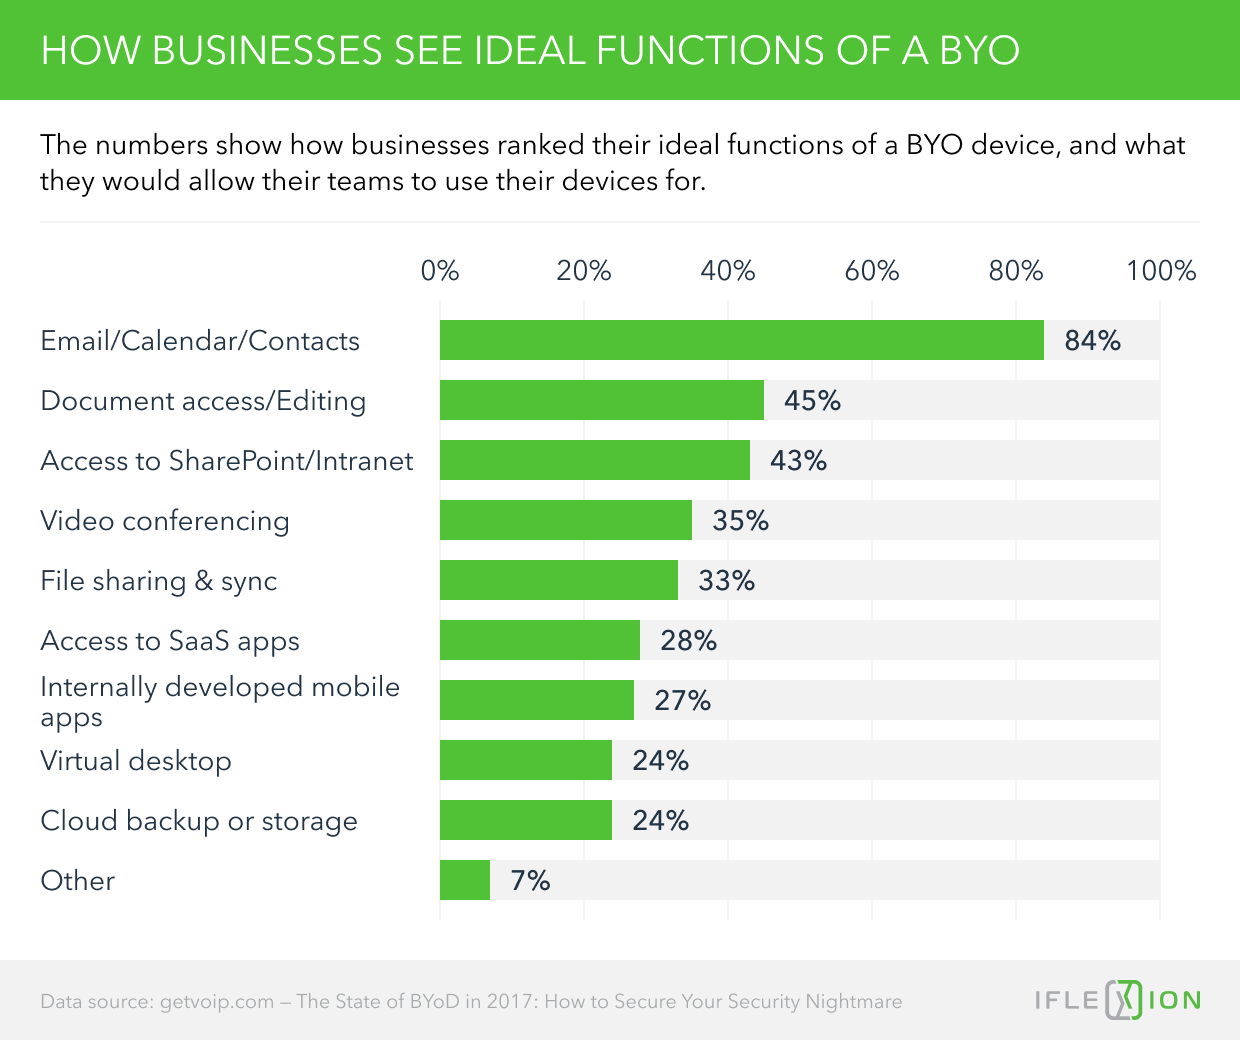 How Businesses See Ideal Functions of a BYOD